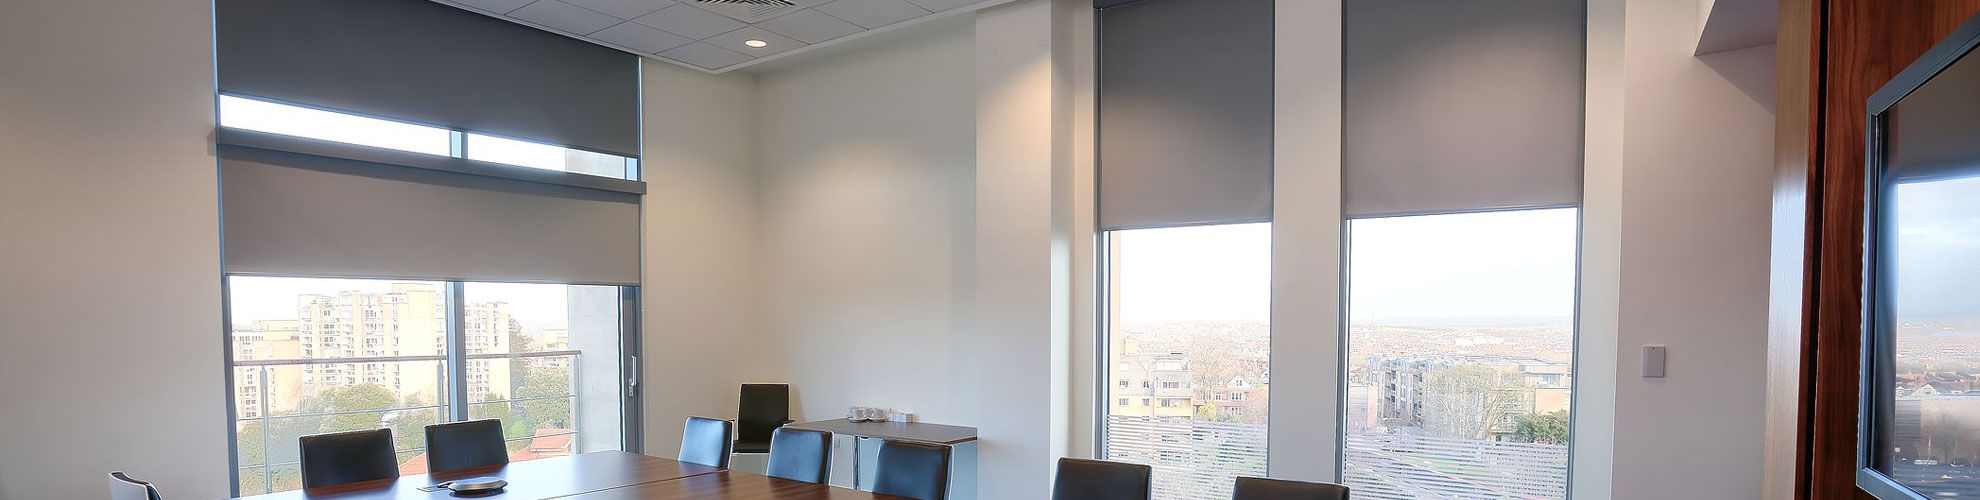 blackout blinds for commercial use